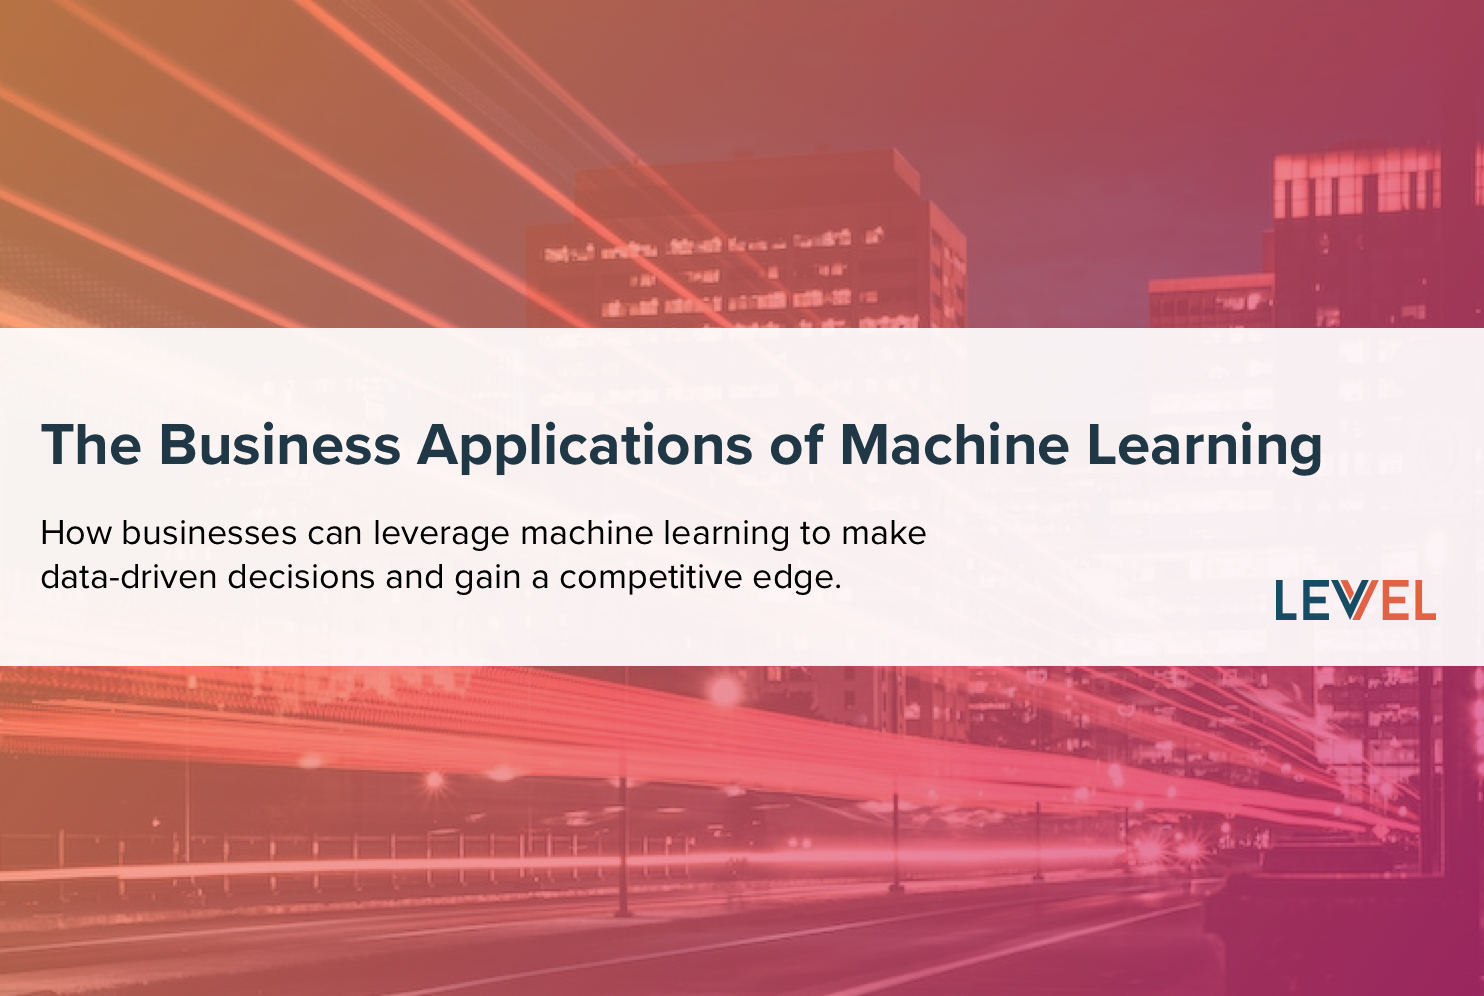 The Business Applications of Machine Learning